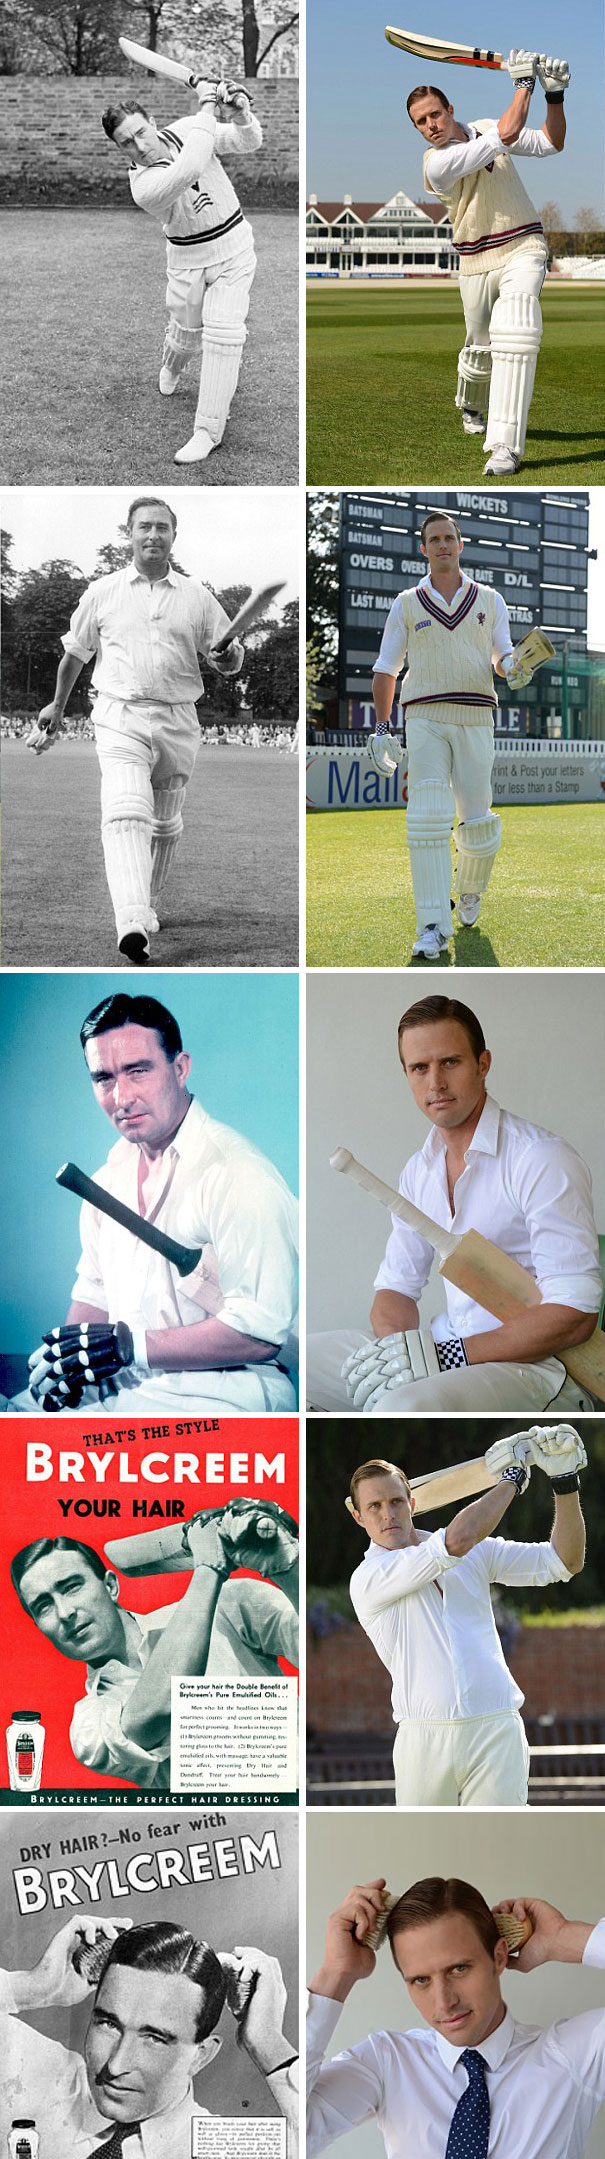 Nick Compton Has Recreated His Grandfather Denis Compton's Photos And Adverts